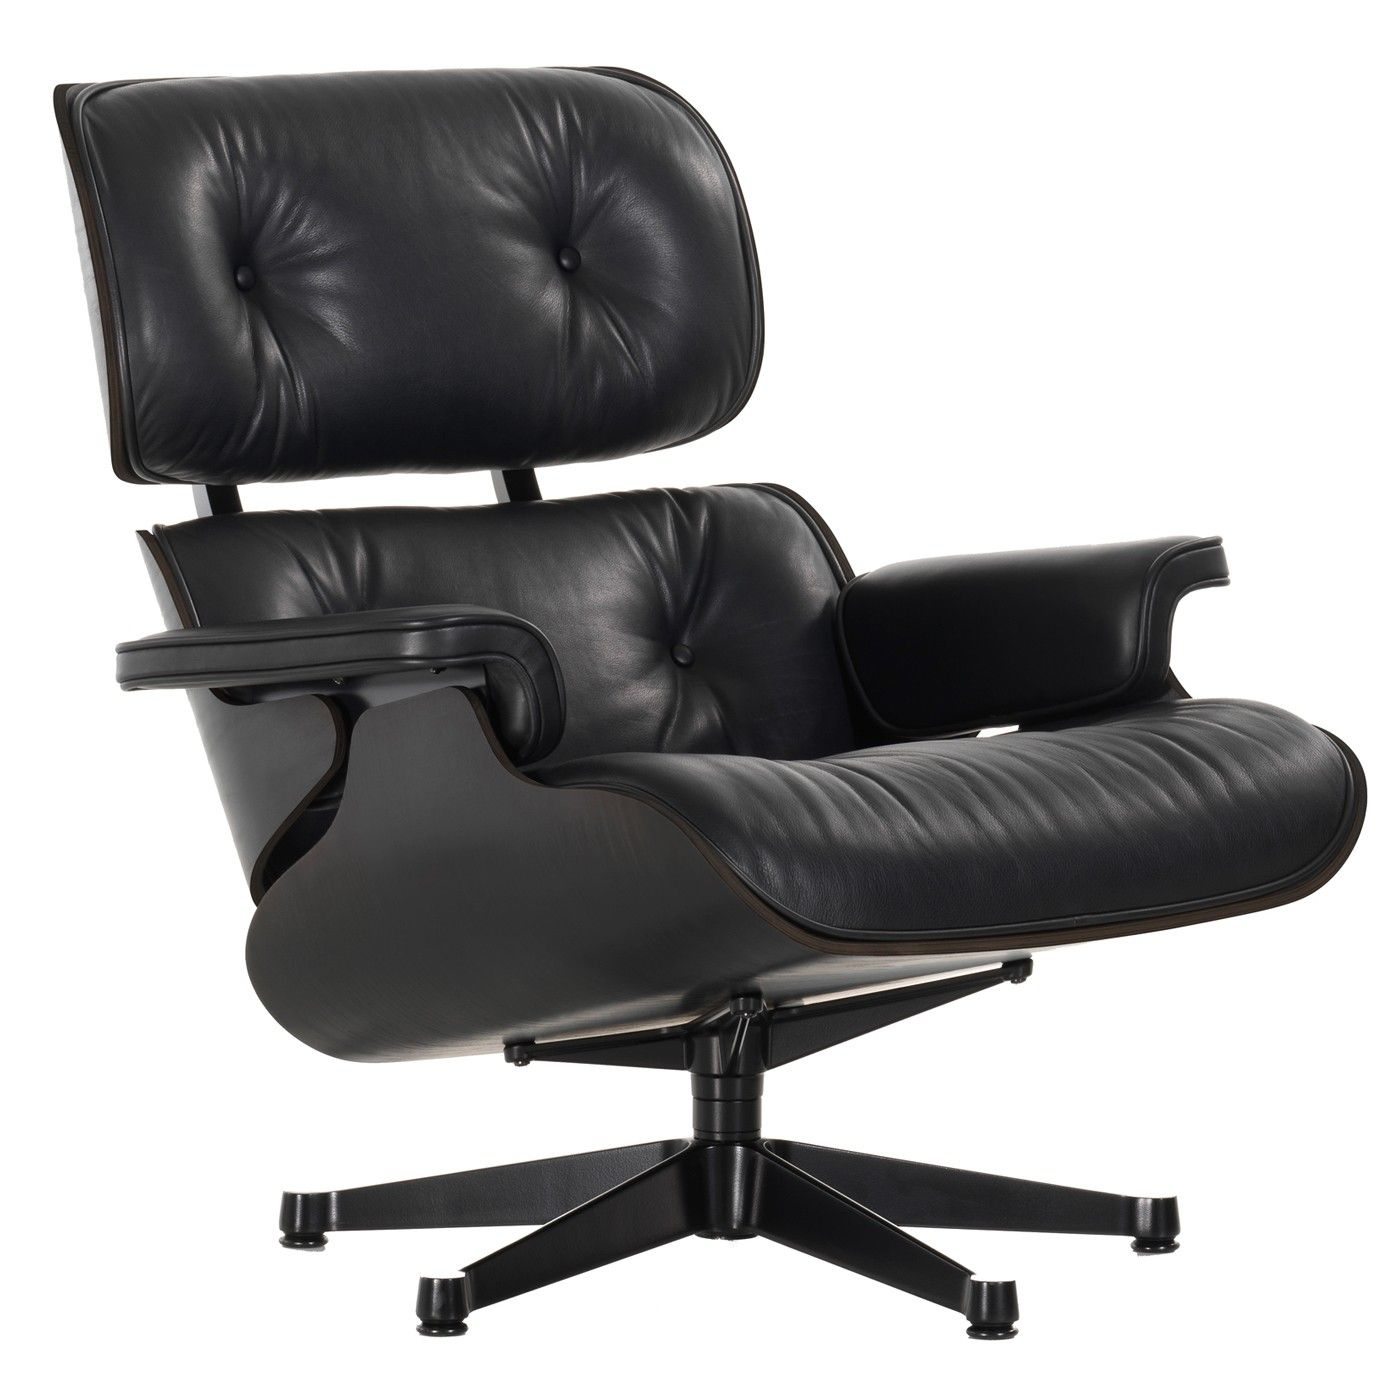 vitra eames lounge chair fauteuil zwart flinders verzendt gratis. Black Bedroom Furniture Sets. Home Design Ideas